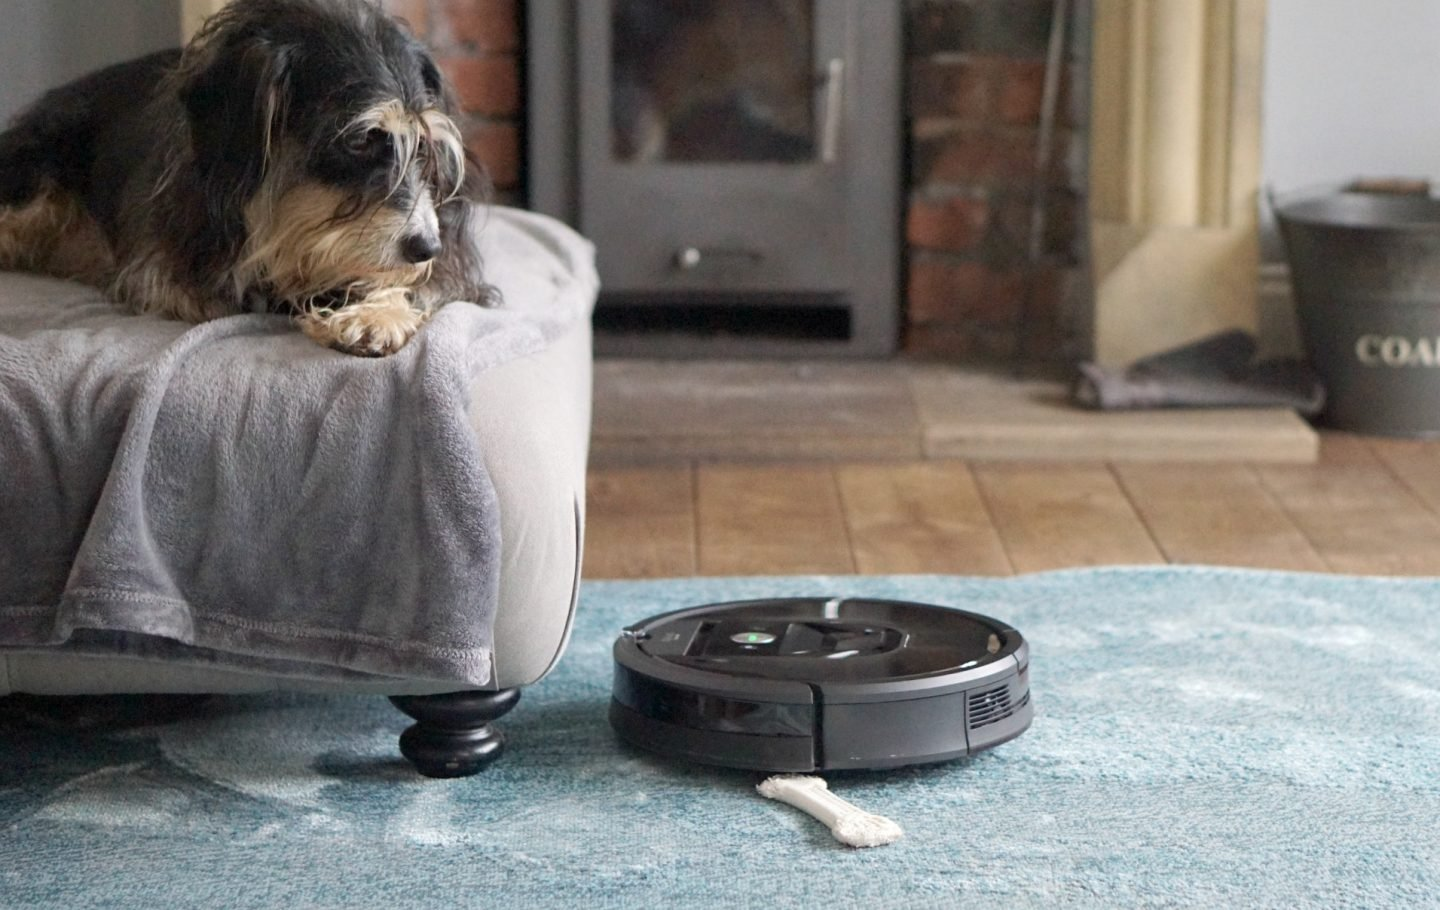 The Roomba can adjust between wood floors and rugs seamlessly